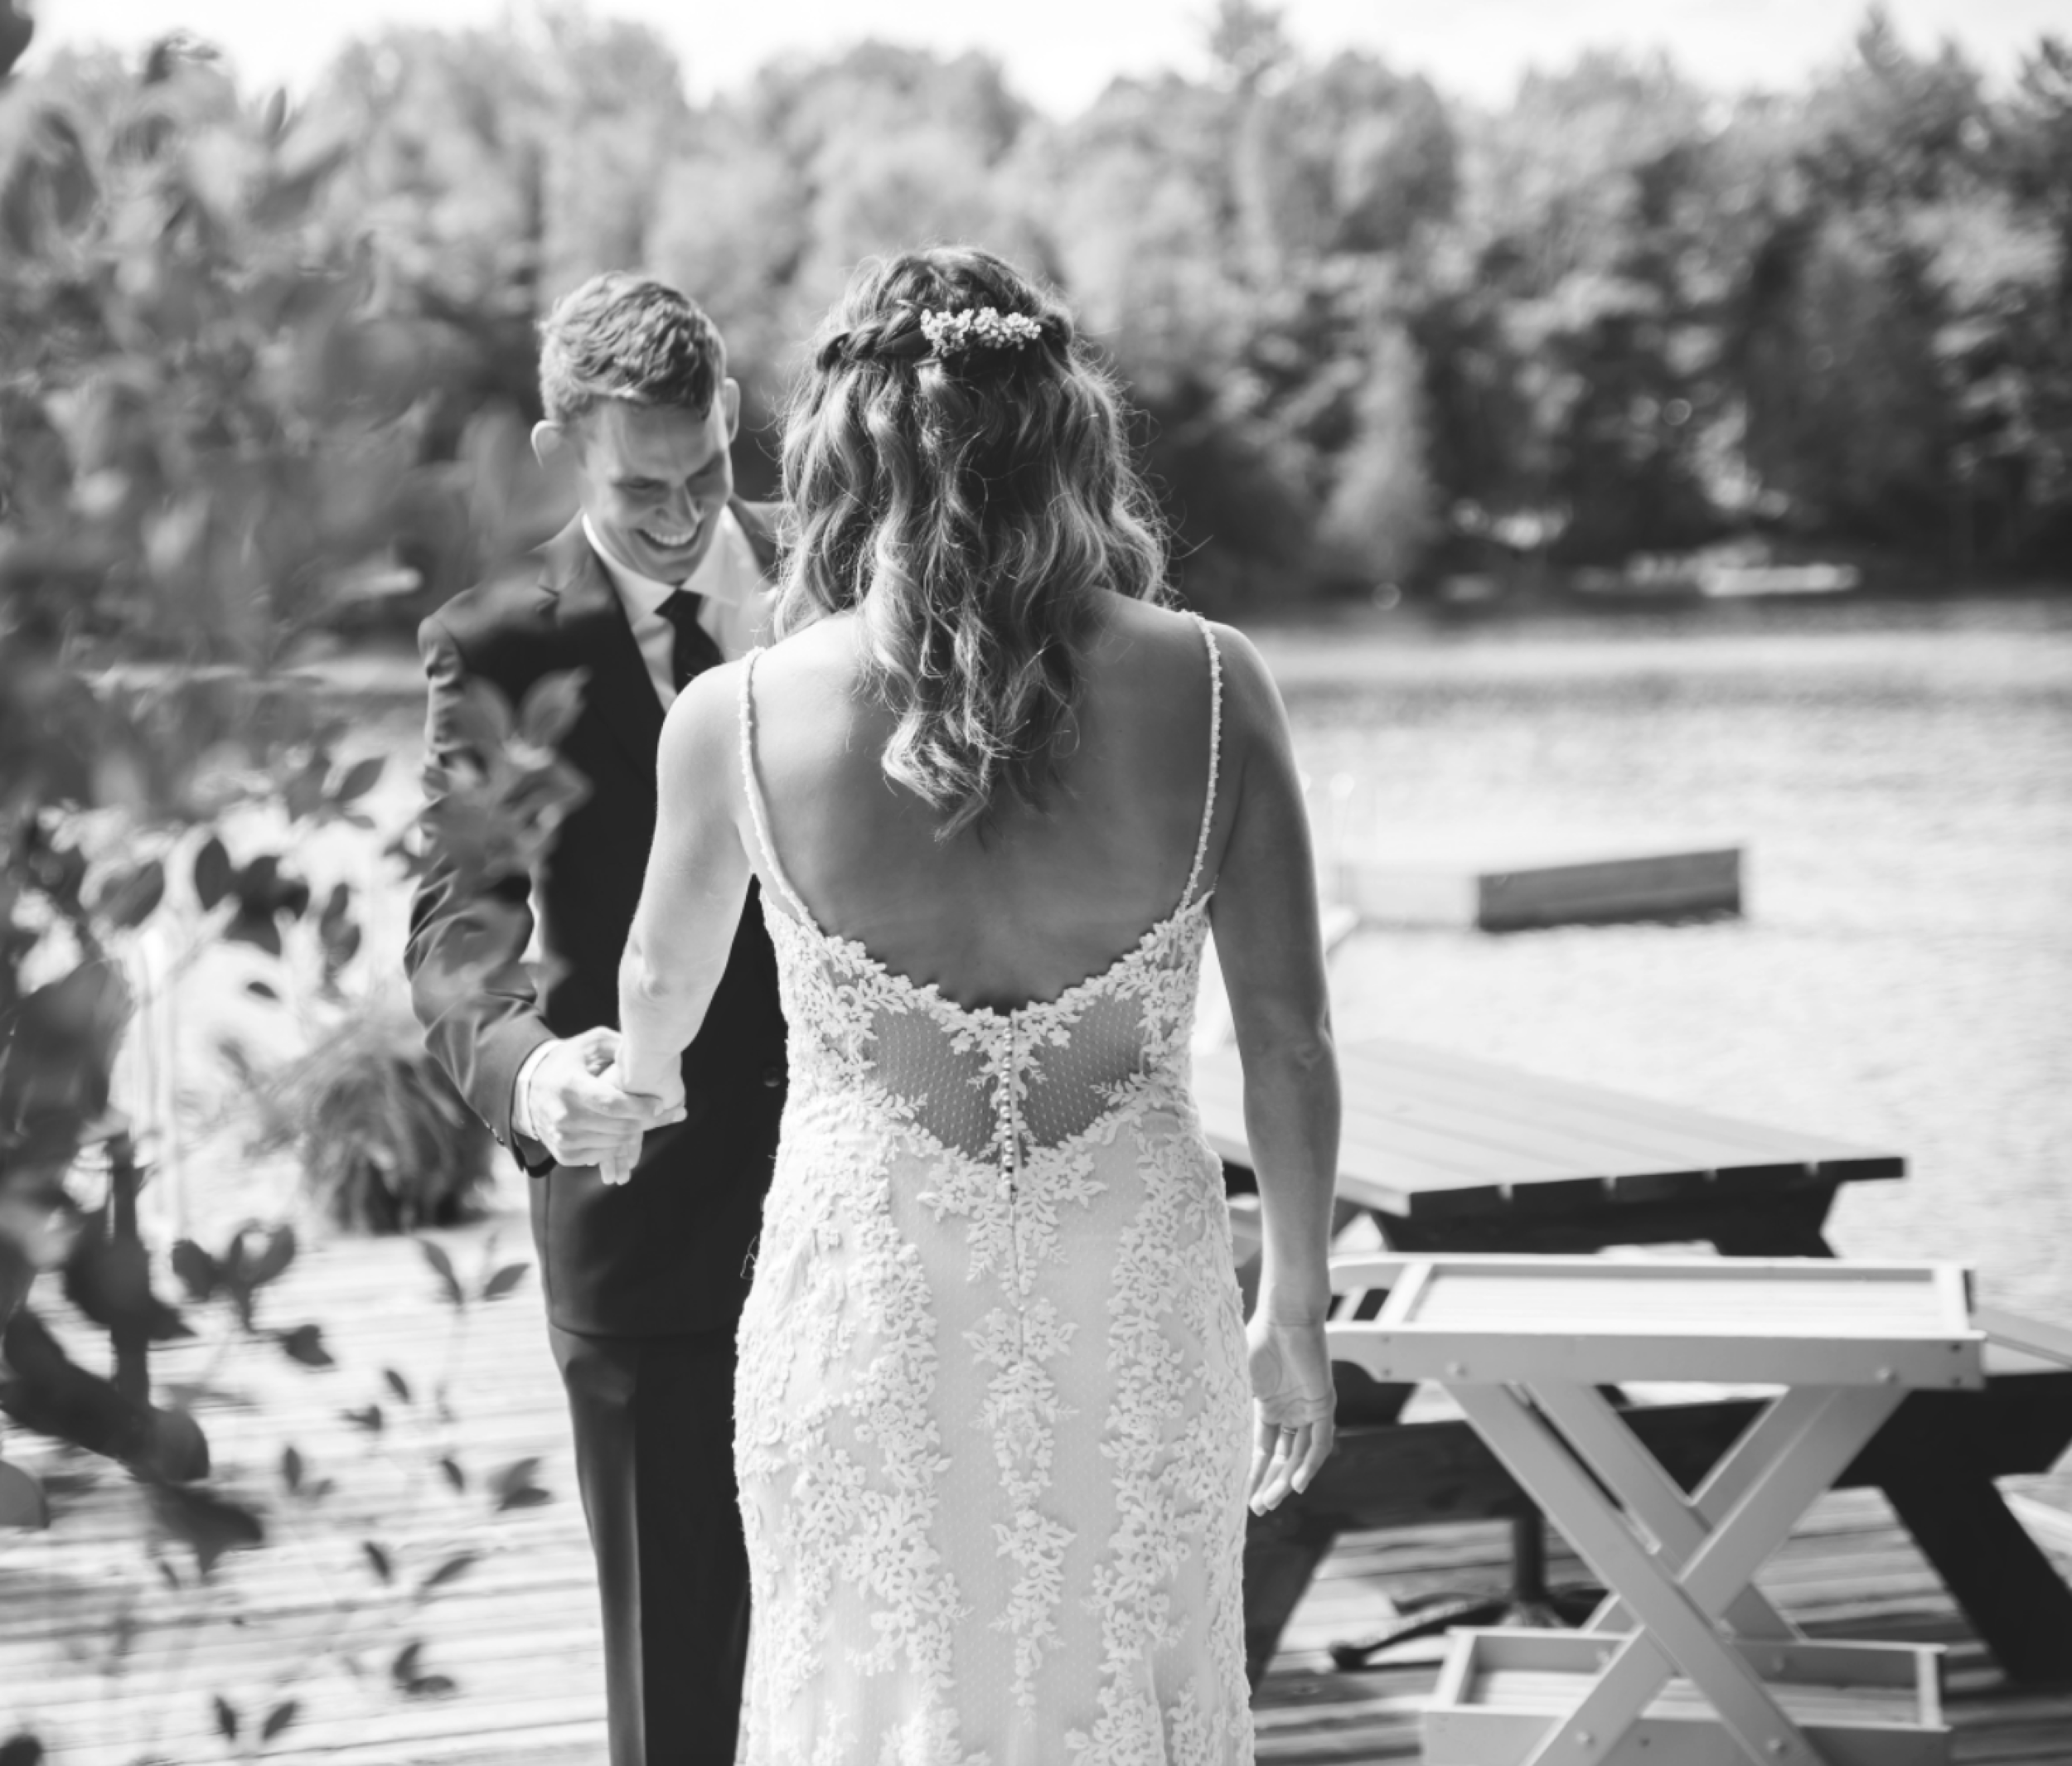 Wedding-Photos-Muskoka-Clevelands-House-Photographer-Wedding-Hamilton-GTA-Niagara-Oakville-Moments-by-Lauren-Photography-Photo-Image-23.png